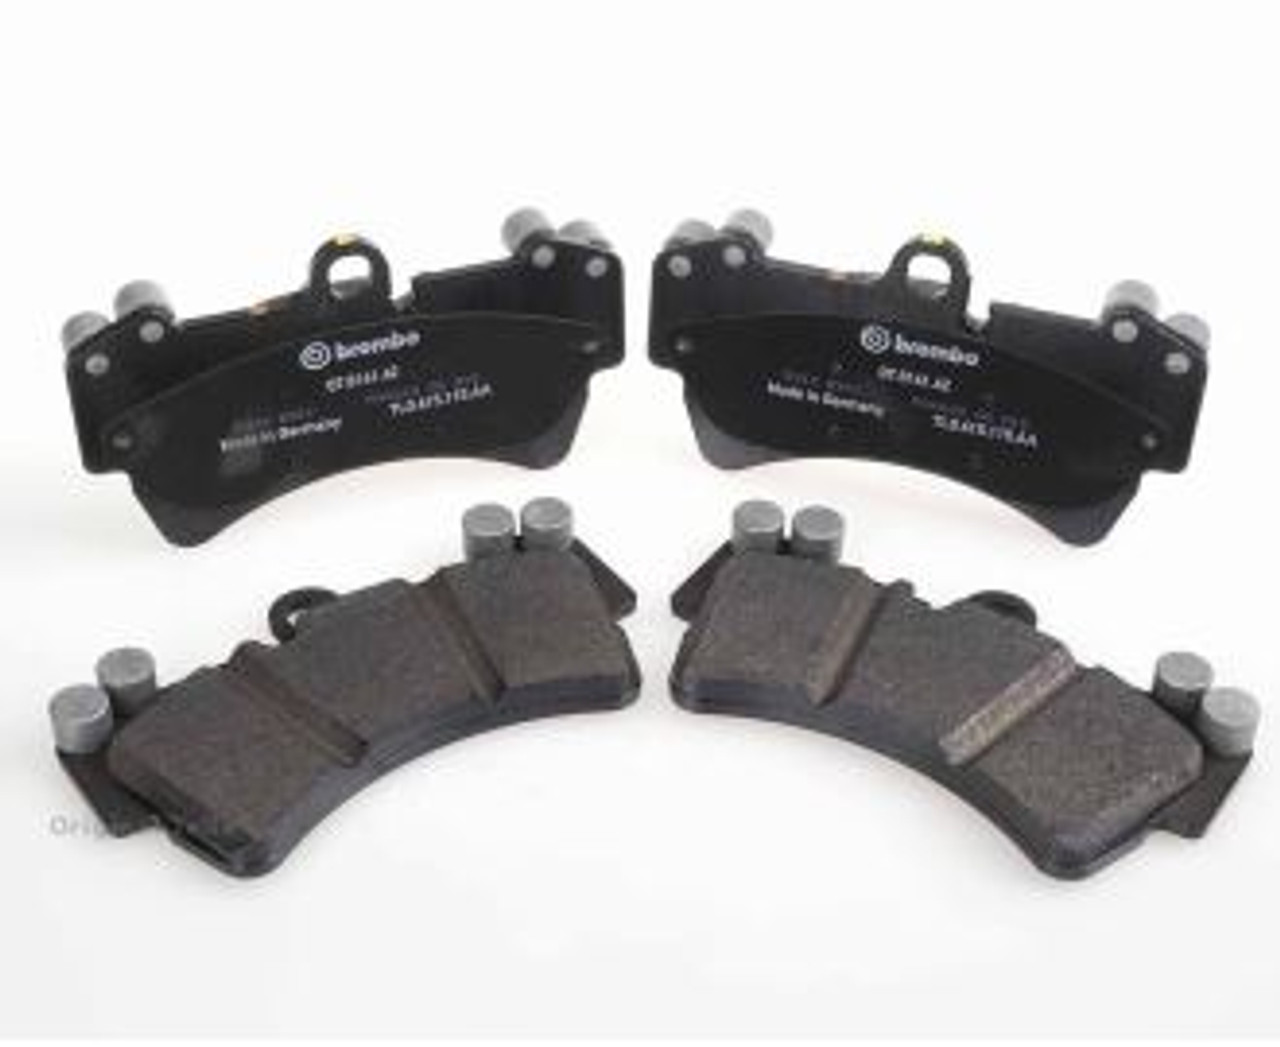 Audi Q7 Front Brake Pads With Wear Sensor Wires 7l0698151r Audi Parts Direct